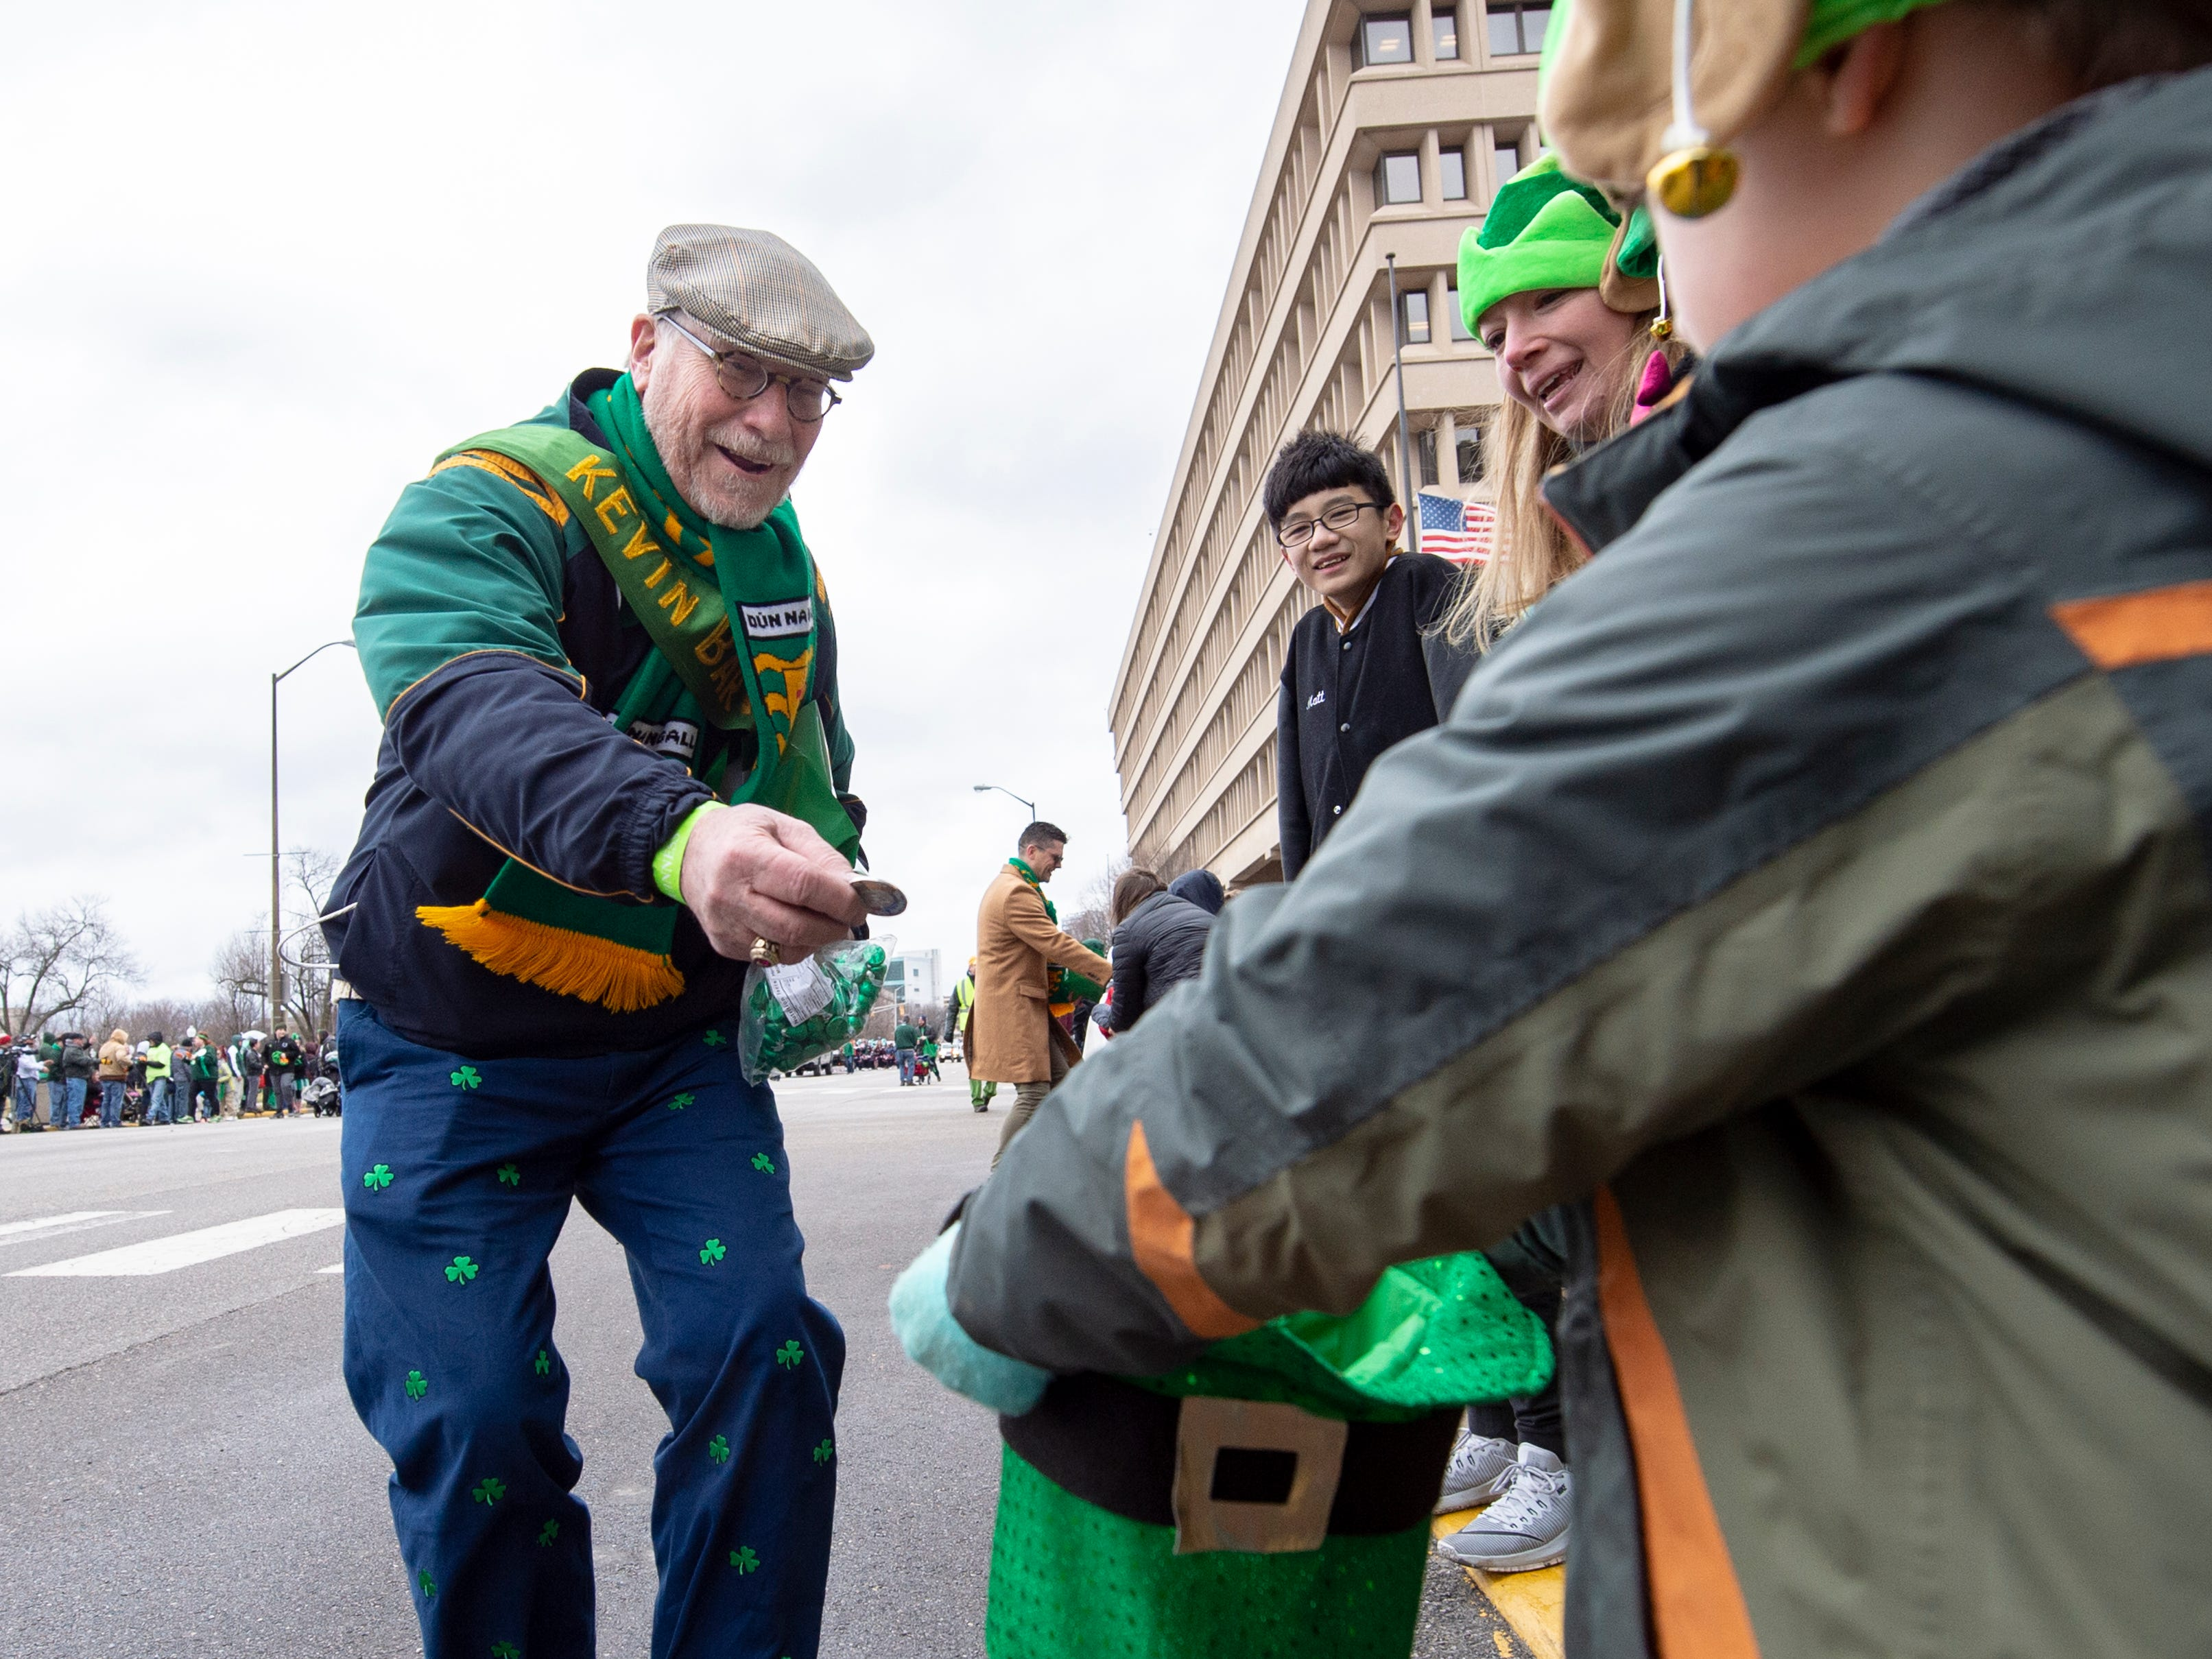 The Grand Marshal of the parade, Kevin Murray, 2019 Irish Citizen of the Year, hands out coins during the parade. The 39th annual St. Patrick's Day Parade navigated the streets of Indianapolis, Friday, March 15, 2019.